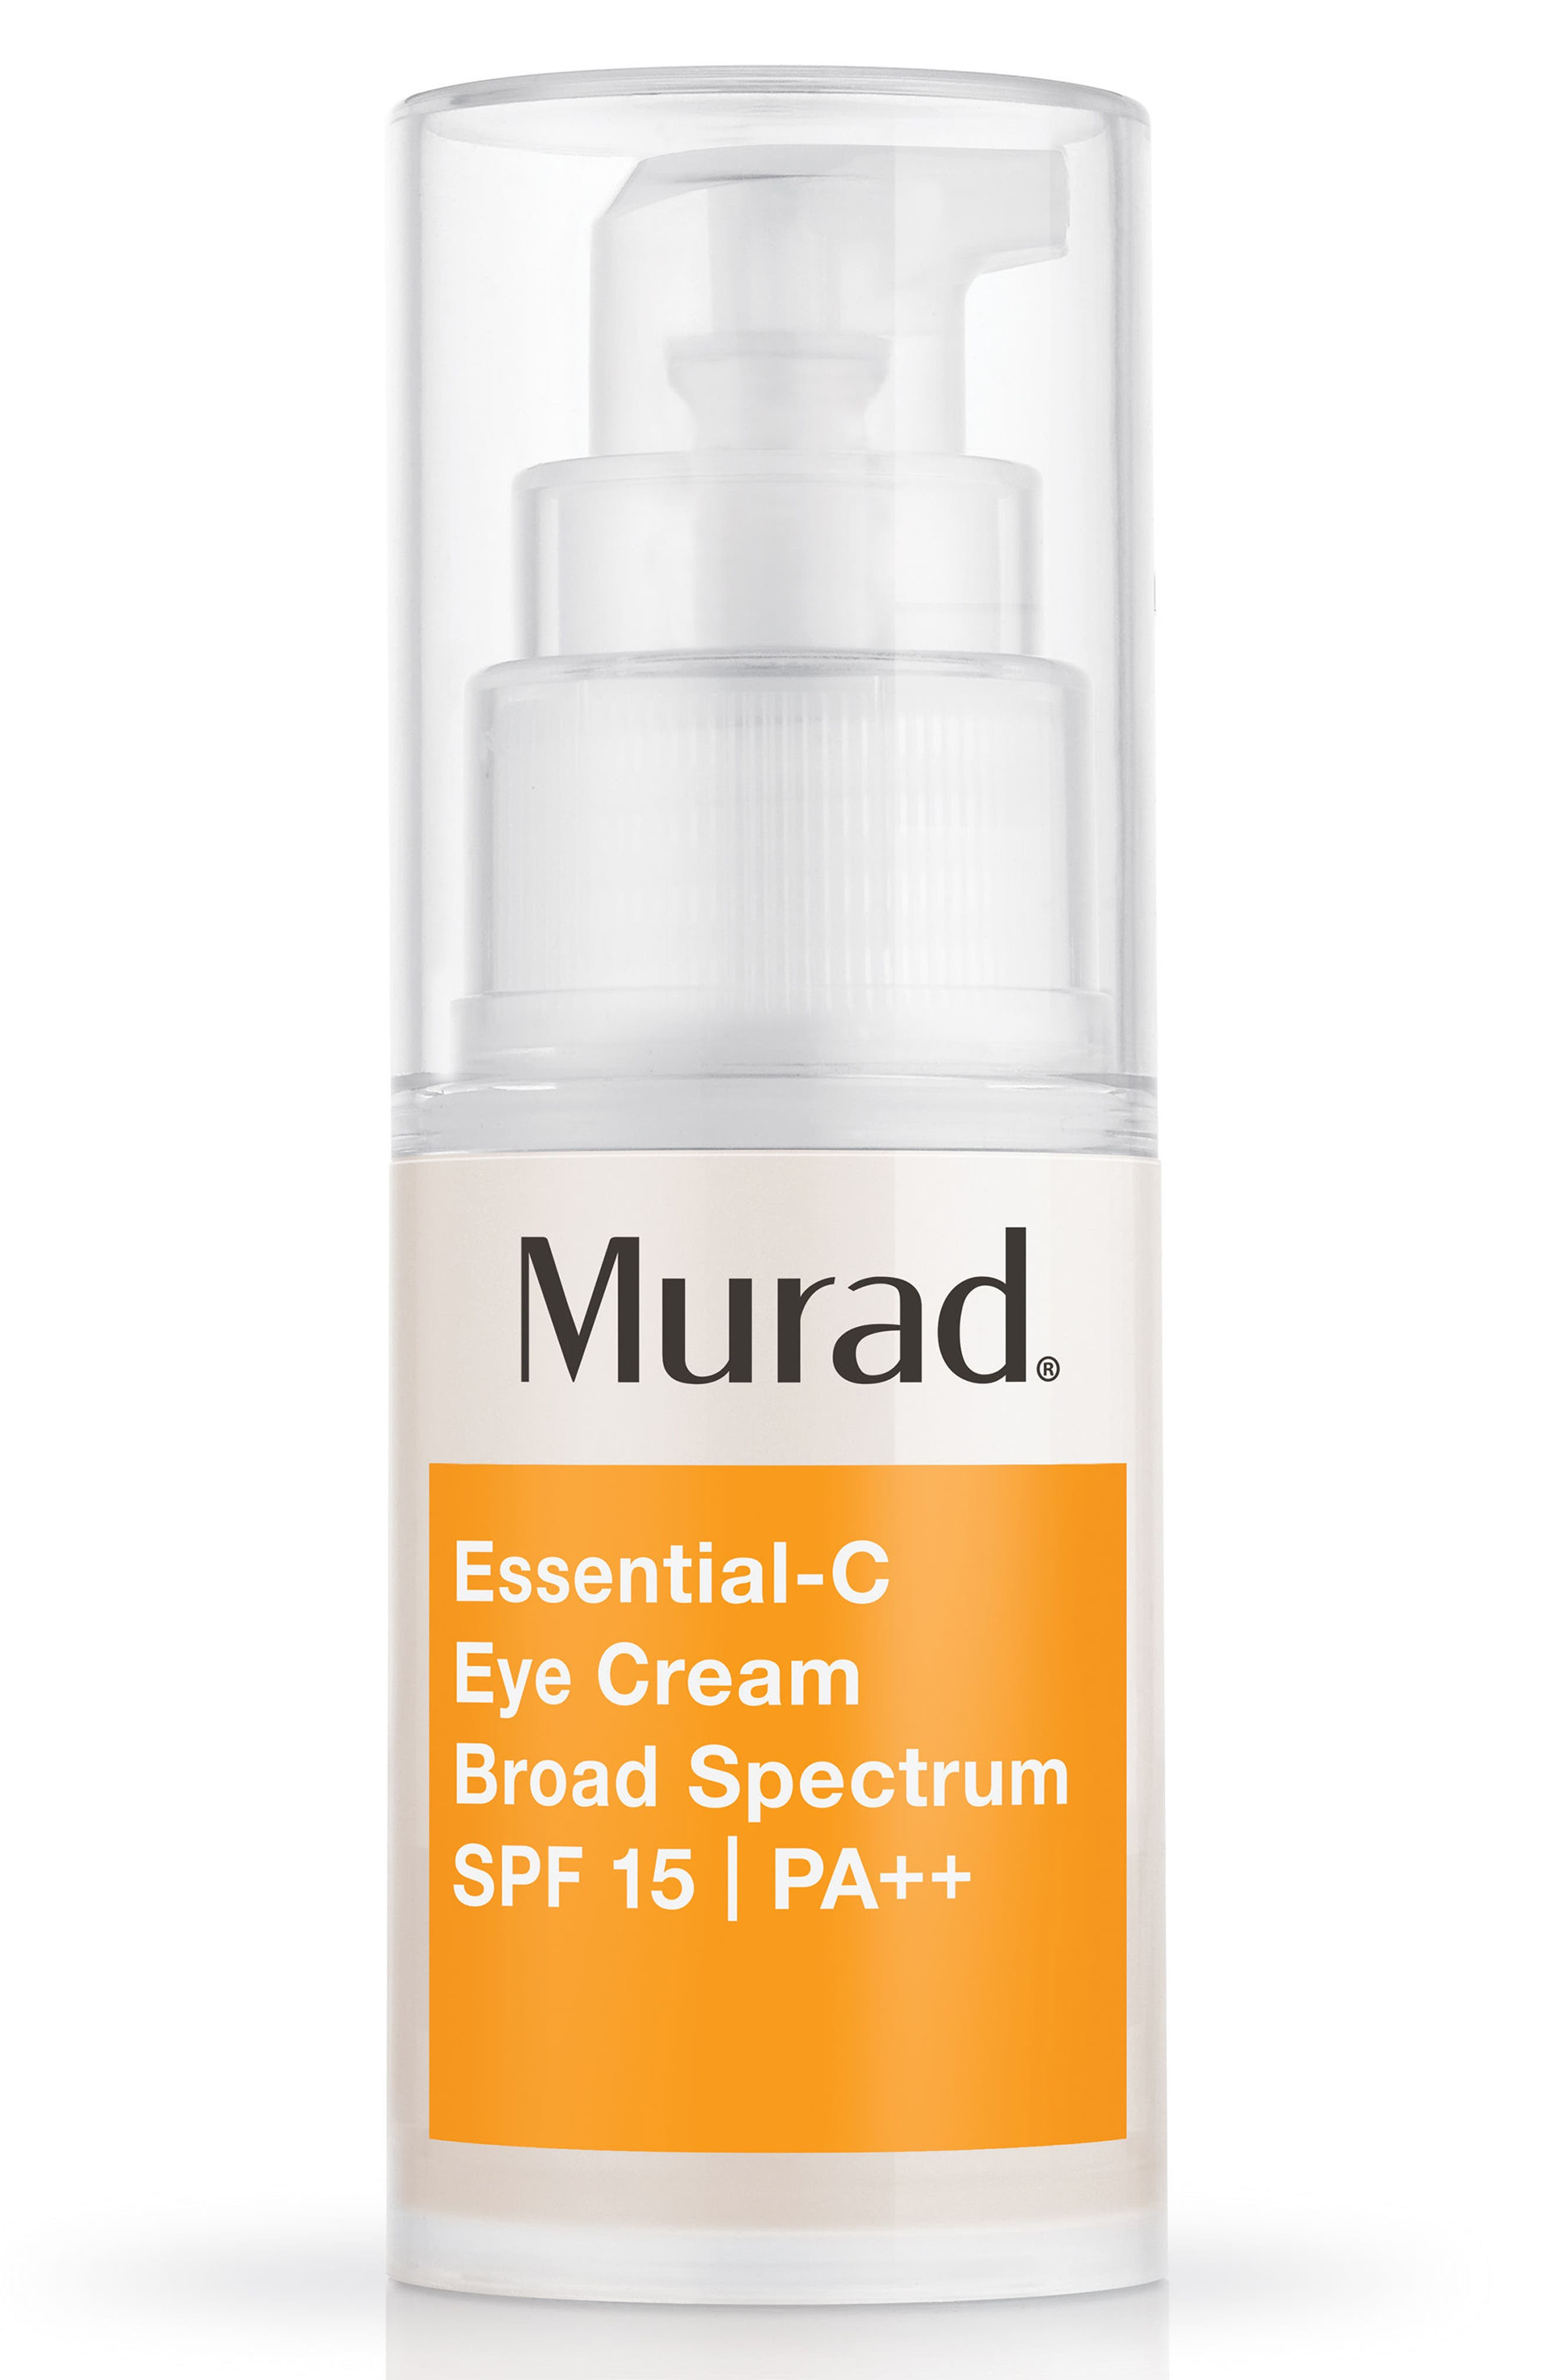 Murad® Essential-C Eye Cream Broad Spectrum SPF 15 PA+++